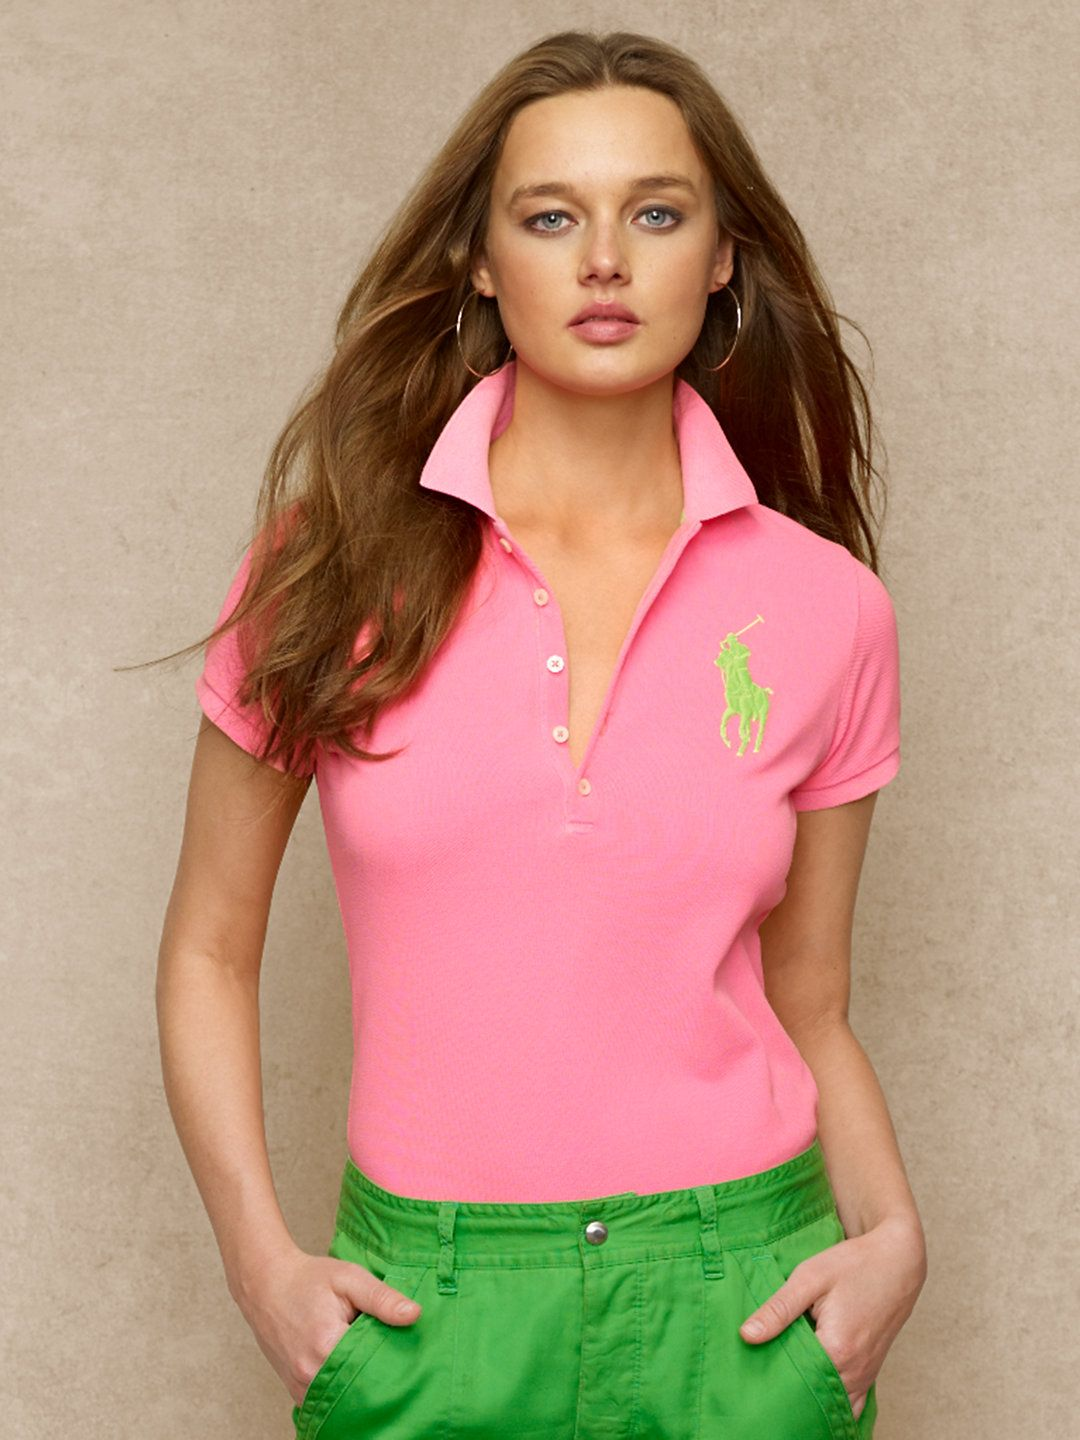 93b397d1 Skinny-Fit Big Pony Polo -RalphLauren.com   1908 By Merit and ...